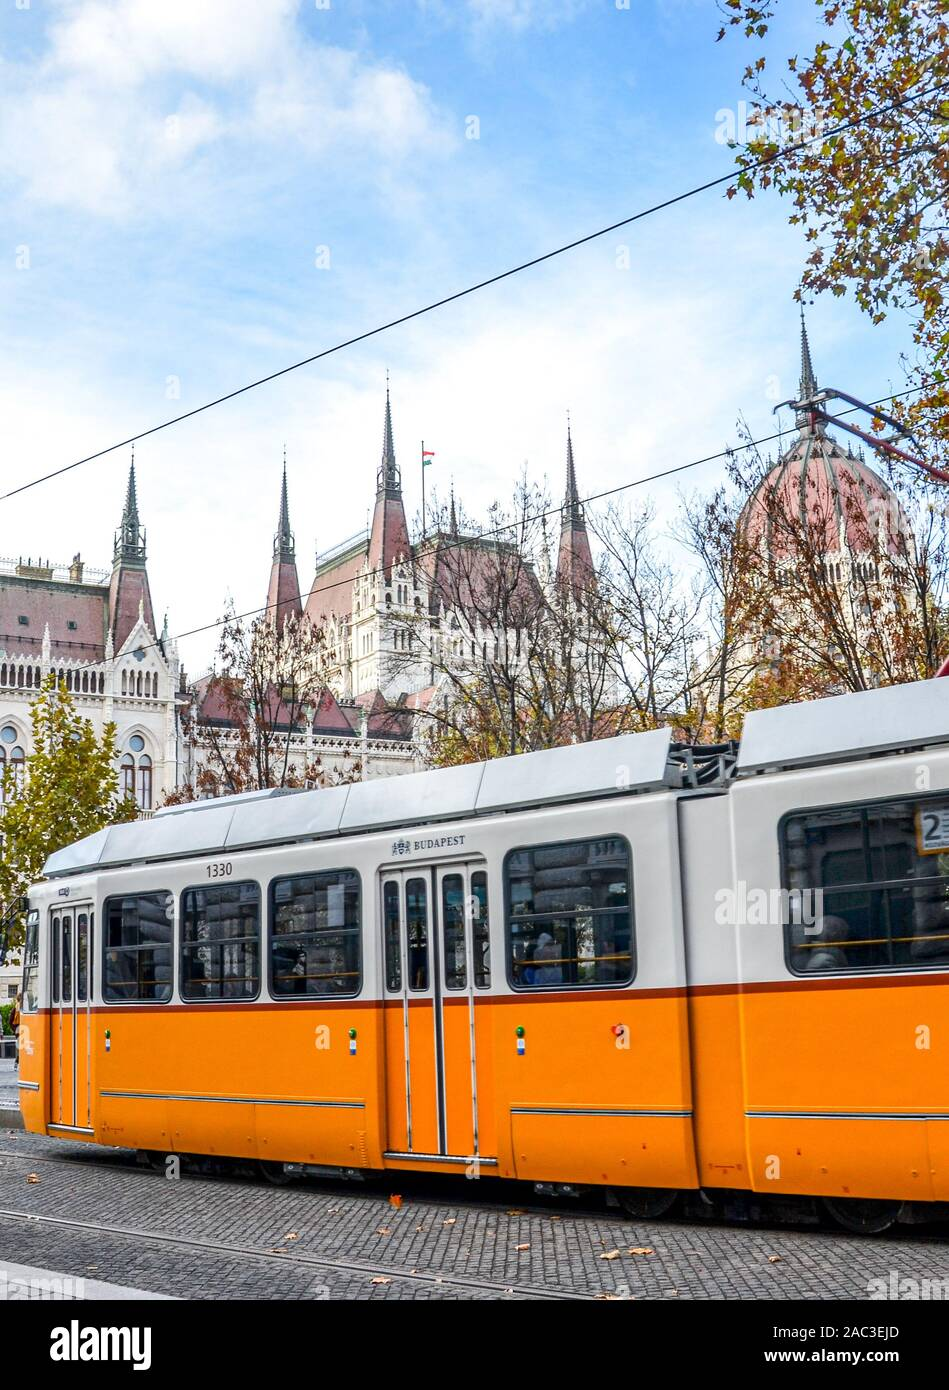 Budapest, Hungary - Nov 6, 2019: Public yellow tram riding in front of the Hungarian Parliament building. Hungarian capital city public transport. City transportation. Eastern European destinations. Stock Photo